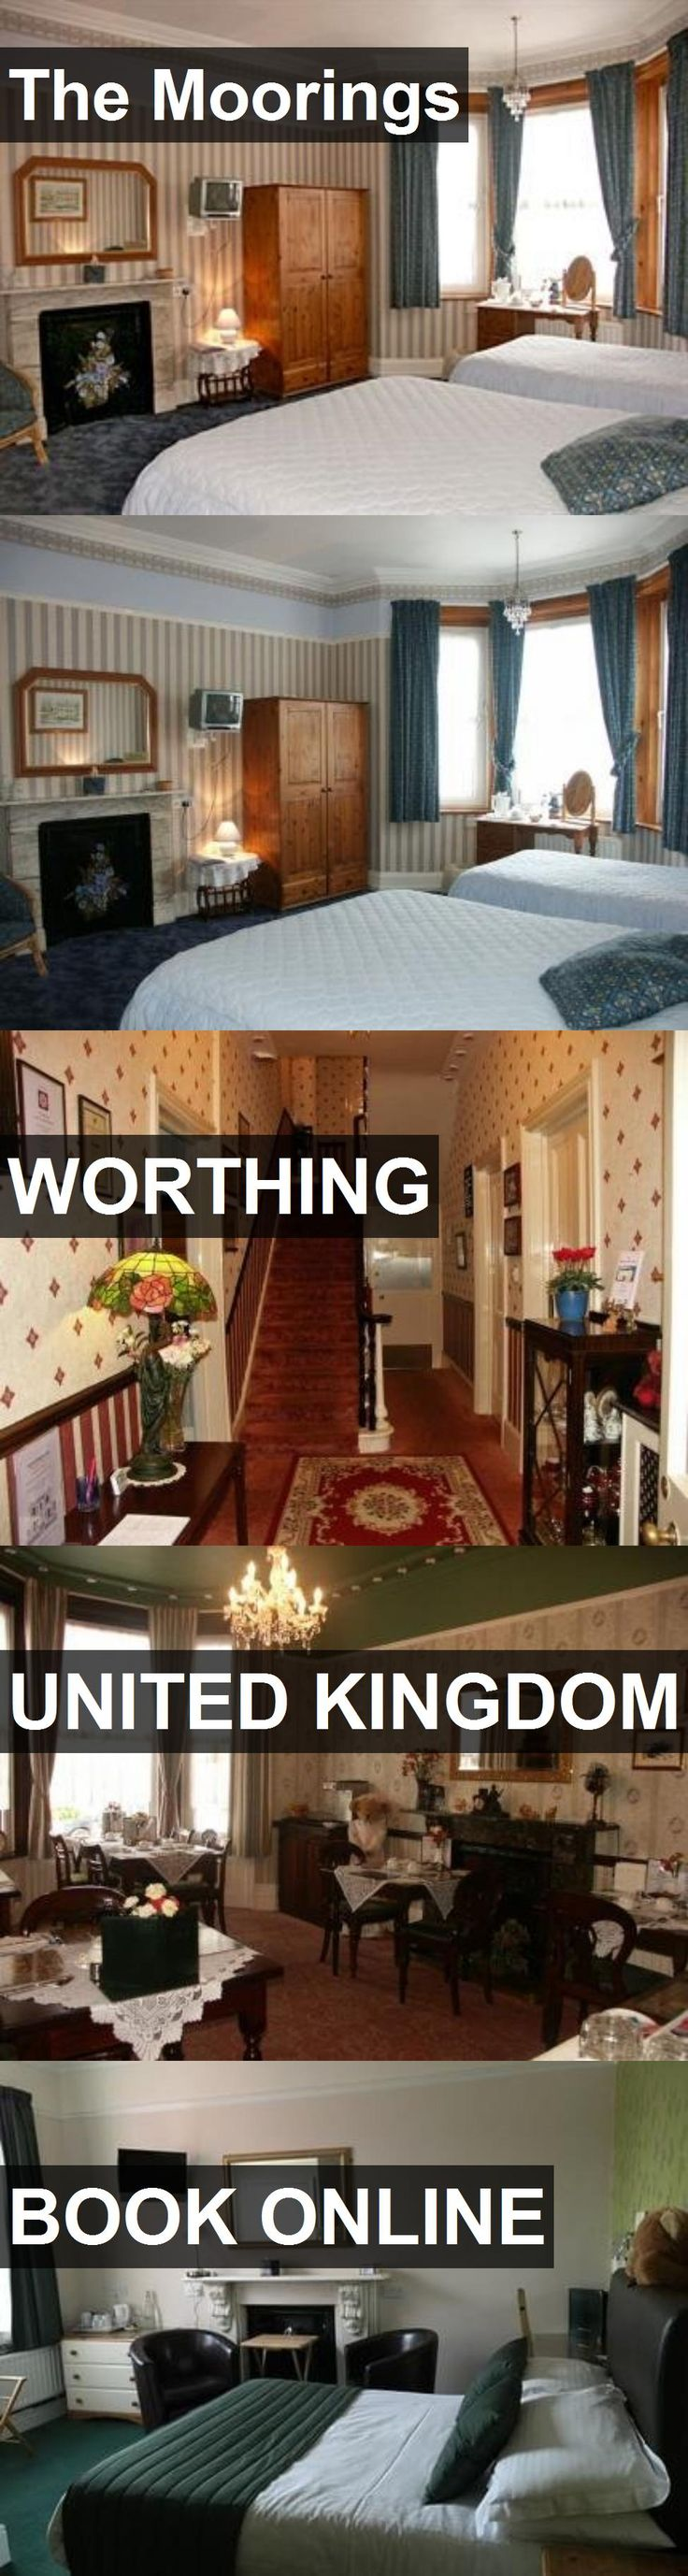 Hotel The Moorings in Worthing, United Kingdom. For more information, photos, reviews and best prices please follow the link. #UnitedKingdom #Worthing #TheMoorings #hotel #travel #vacation